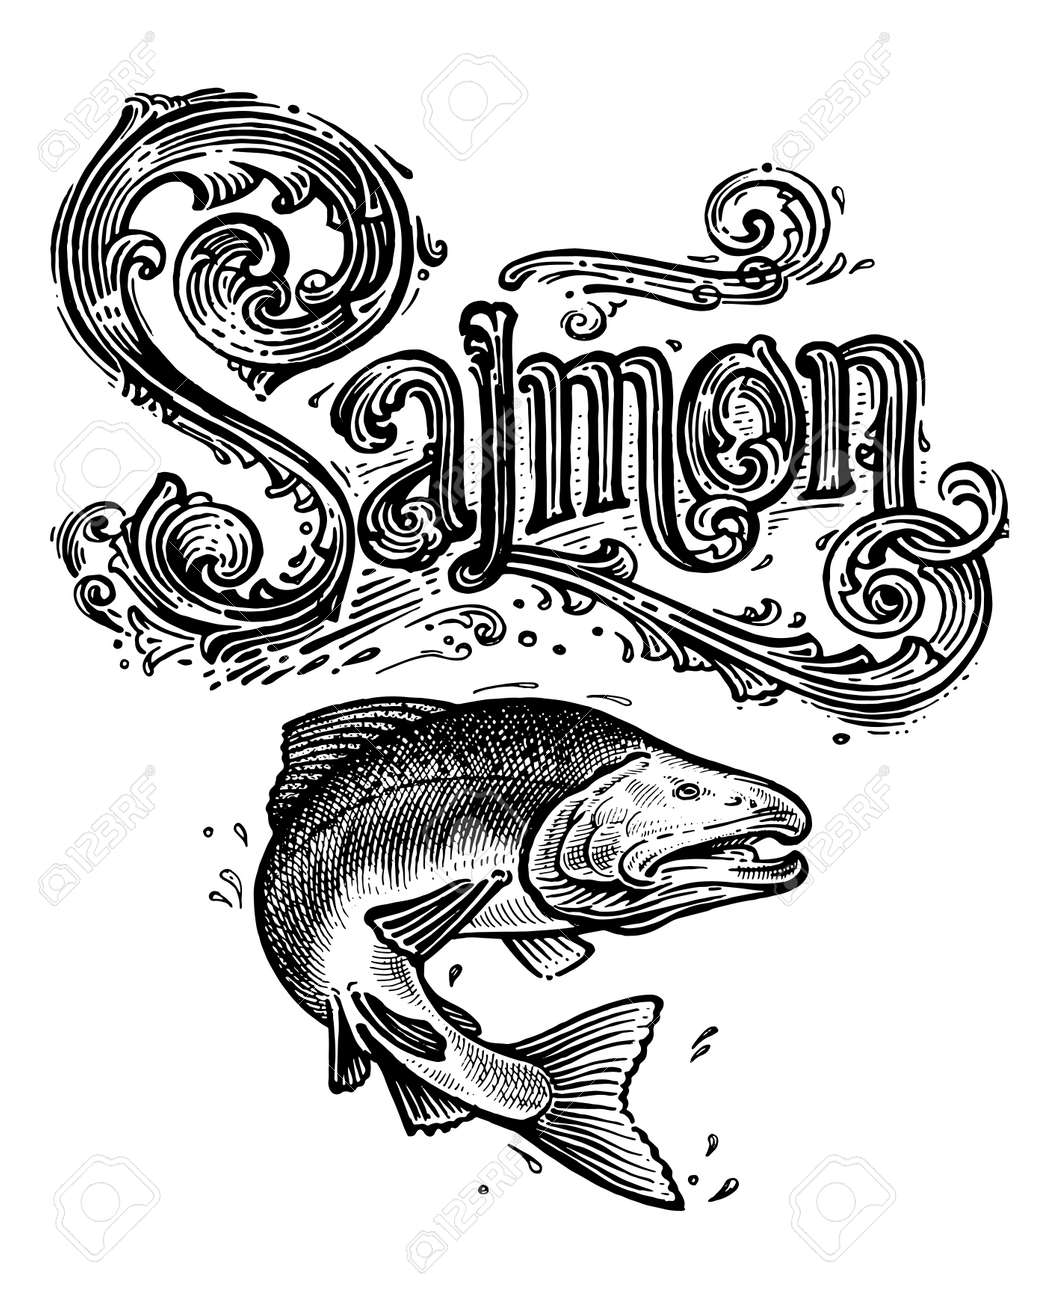 Salmon, vector logo and illustration. Vintage graphics and handwork. Drawing with an ink pen and pencil. The salmon jumps out of the water and a vintage logo. A collection of beautiful logo and words. - 165133134